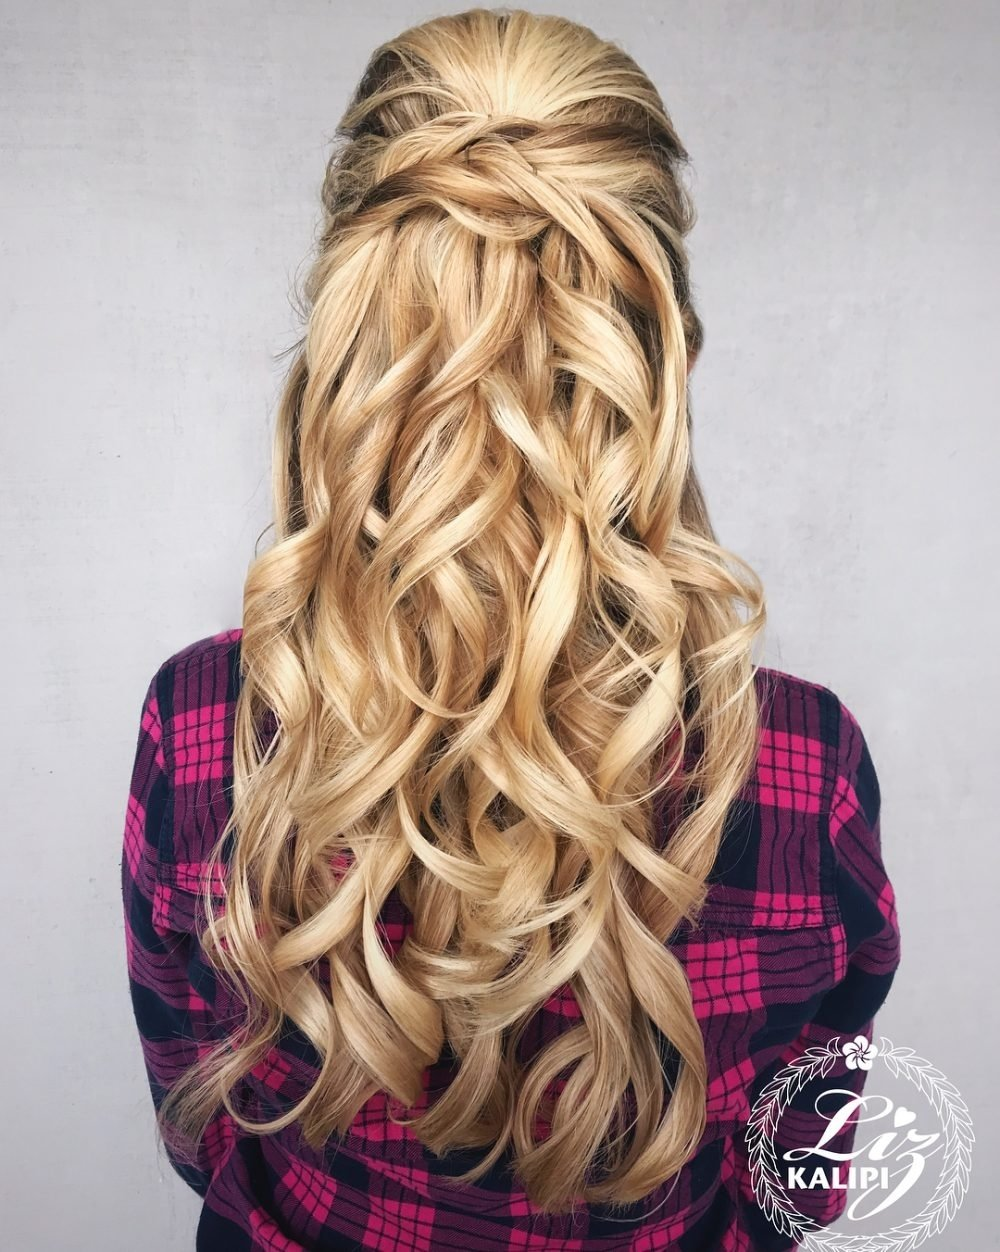 29 prom hairstyles for long hair that are gorgeous (updated for 2018)